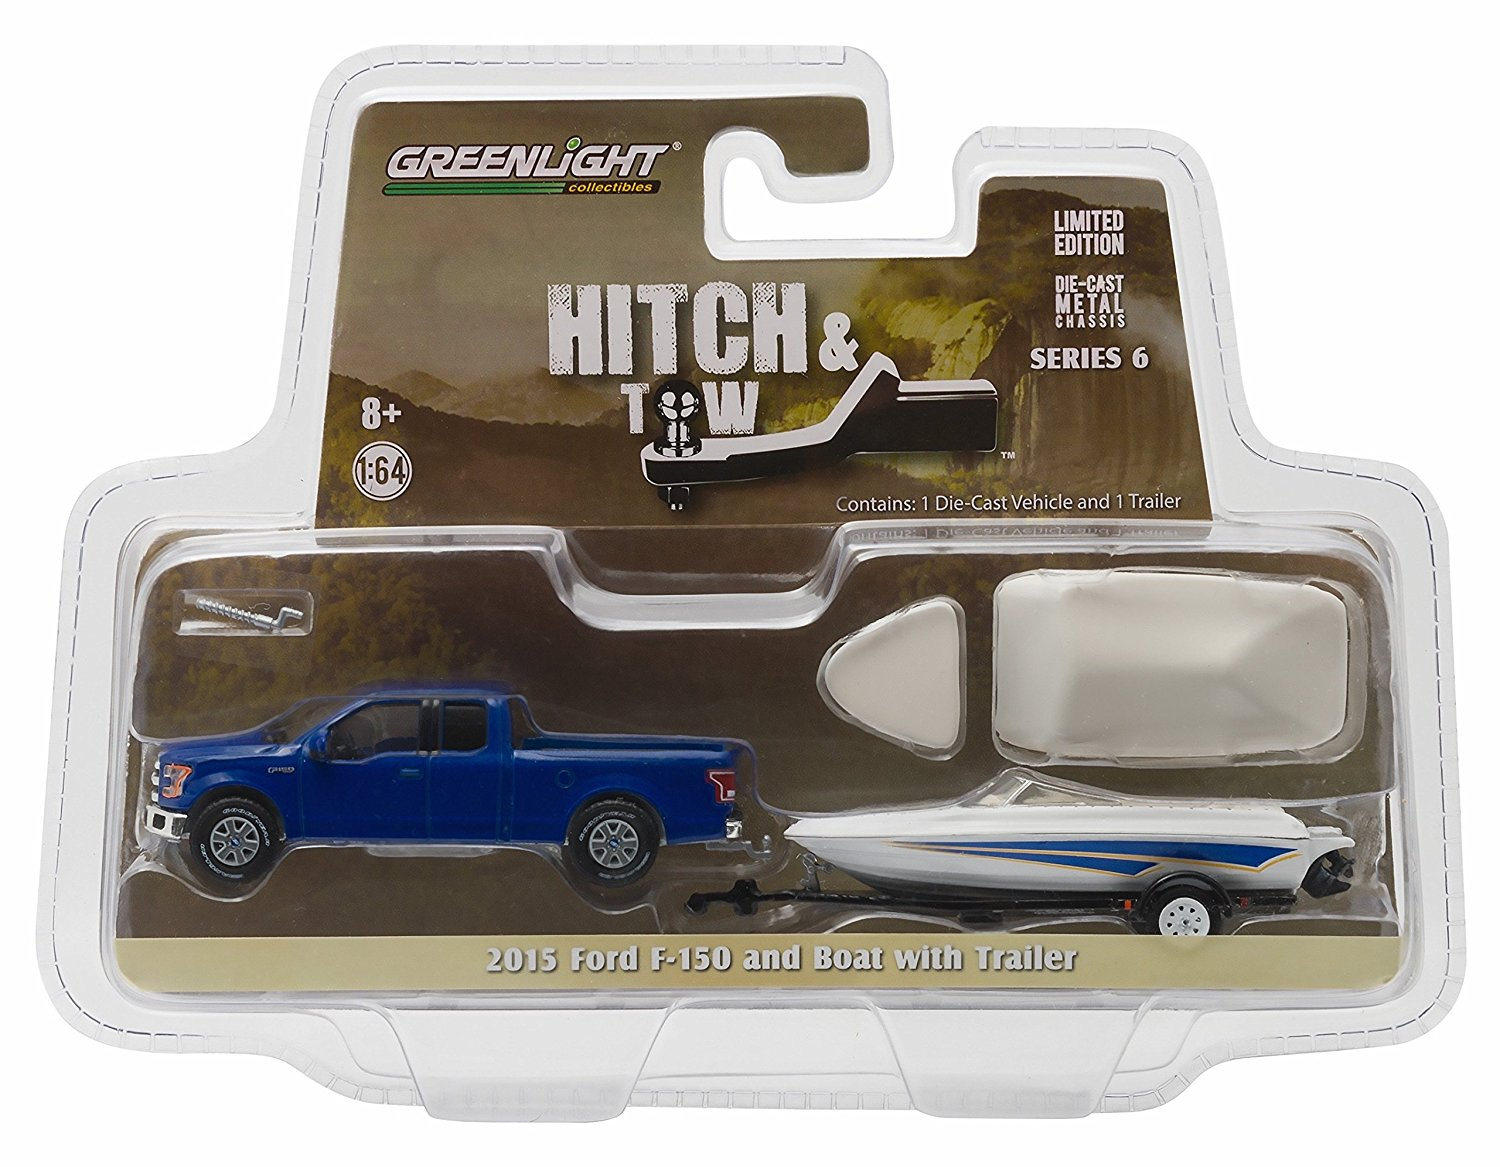 2015 FORD F-150 & BOAT with TRAILER * Hitch & Tow Series 6 * 2016 Greenlight Collectibles Truck & Trailer Limited Edition 1:64 Scale Die-Cast Vehicle Set